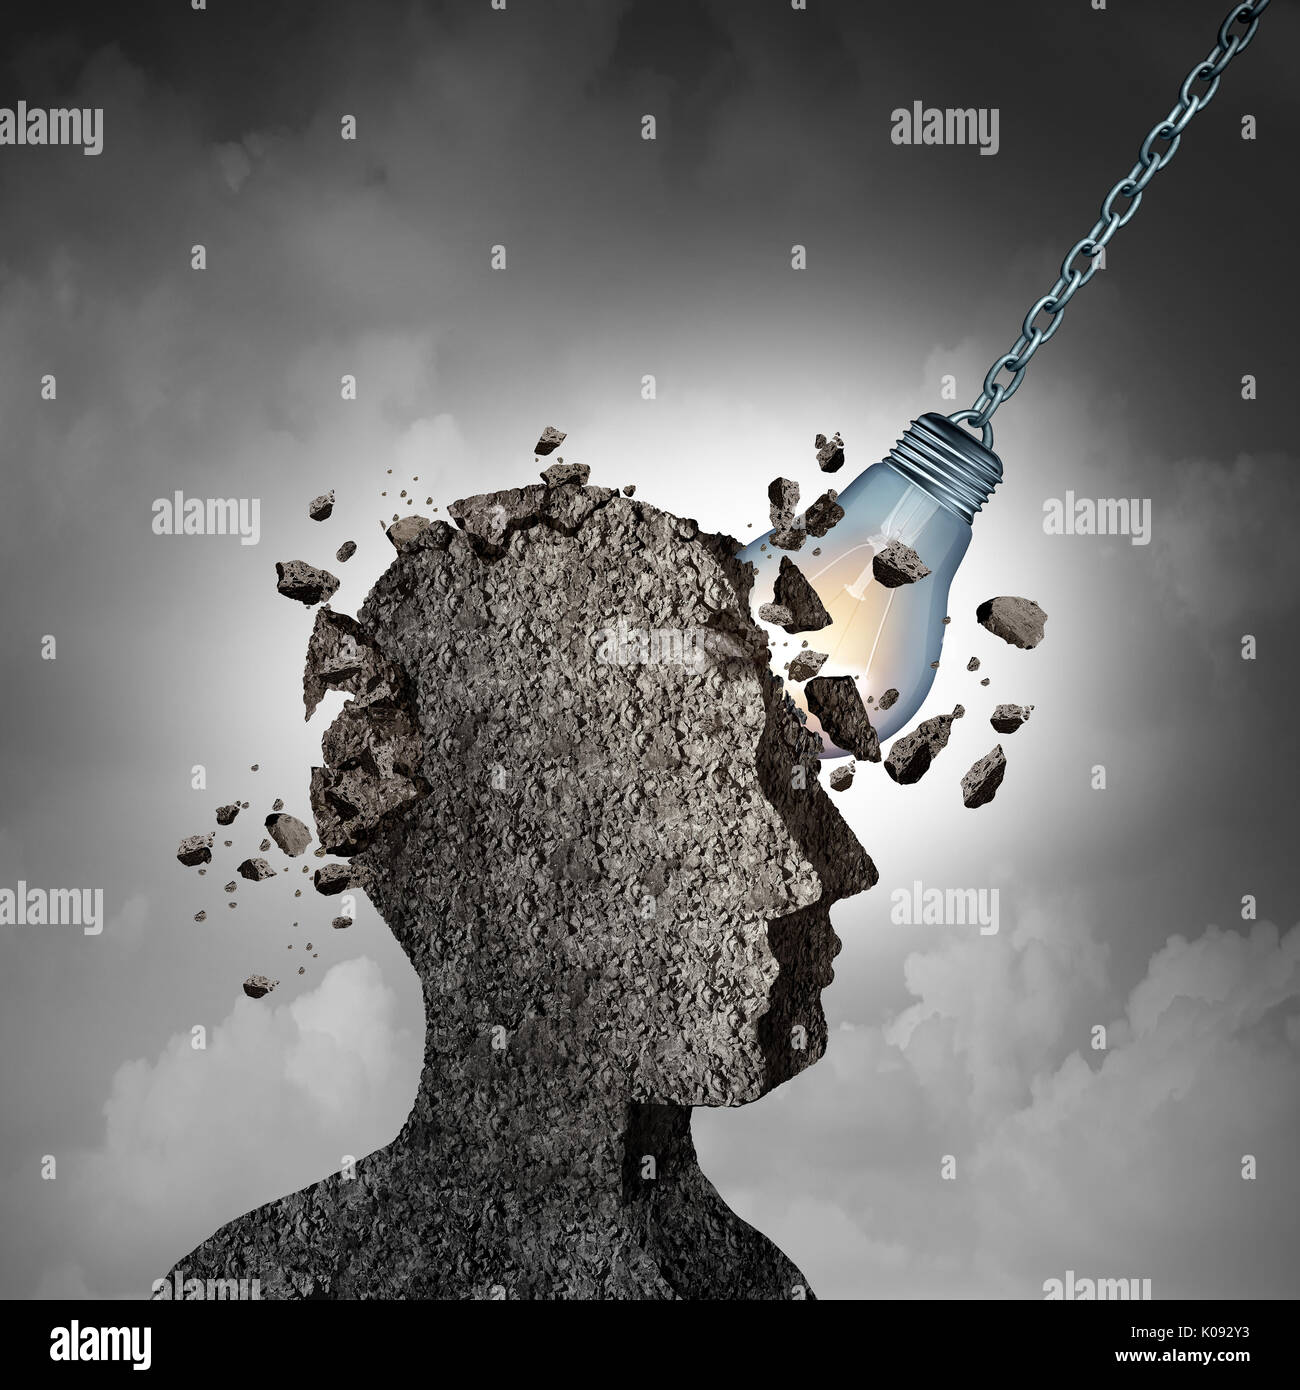 Concept Of Brainstorming and racking your brains idea as a human head made of cement or concrete being demolished by an illuminated lightbulb. - Stock Image